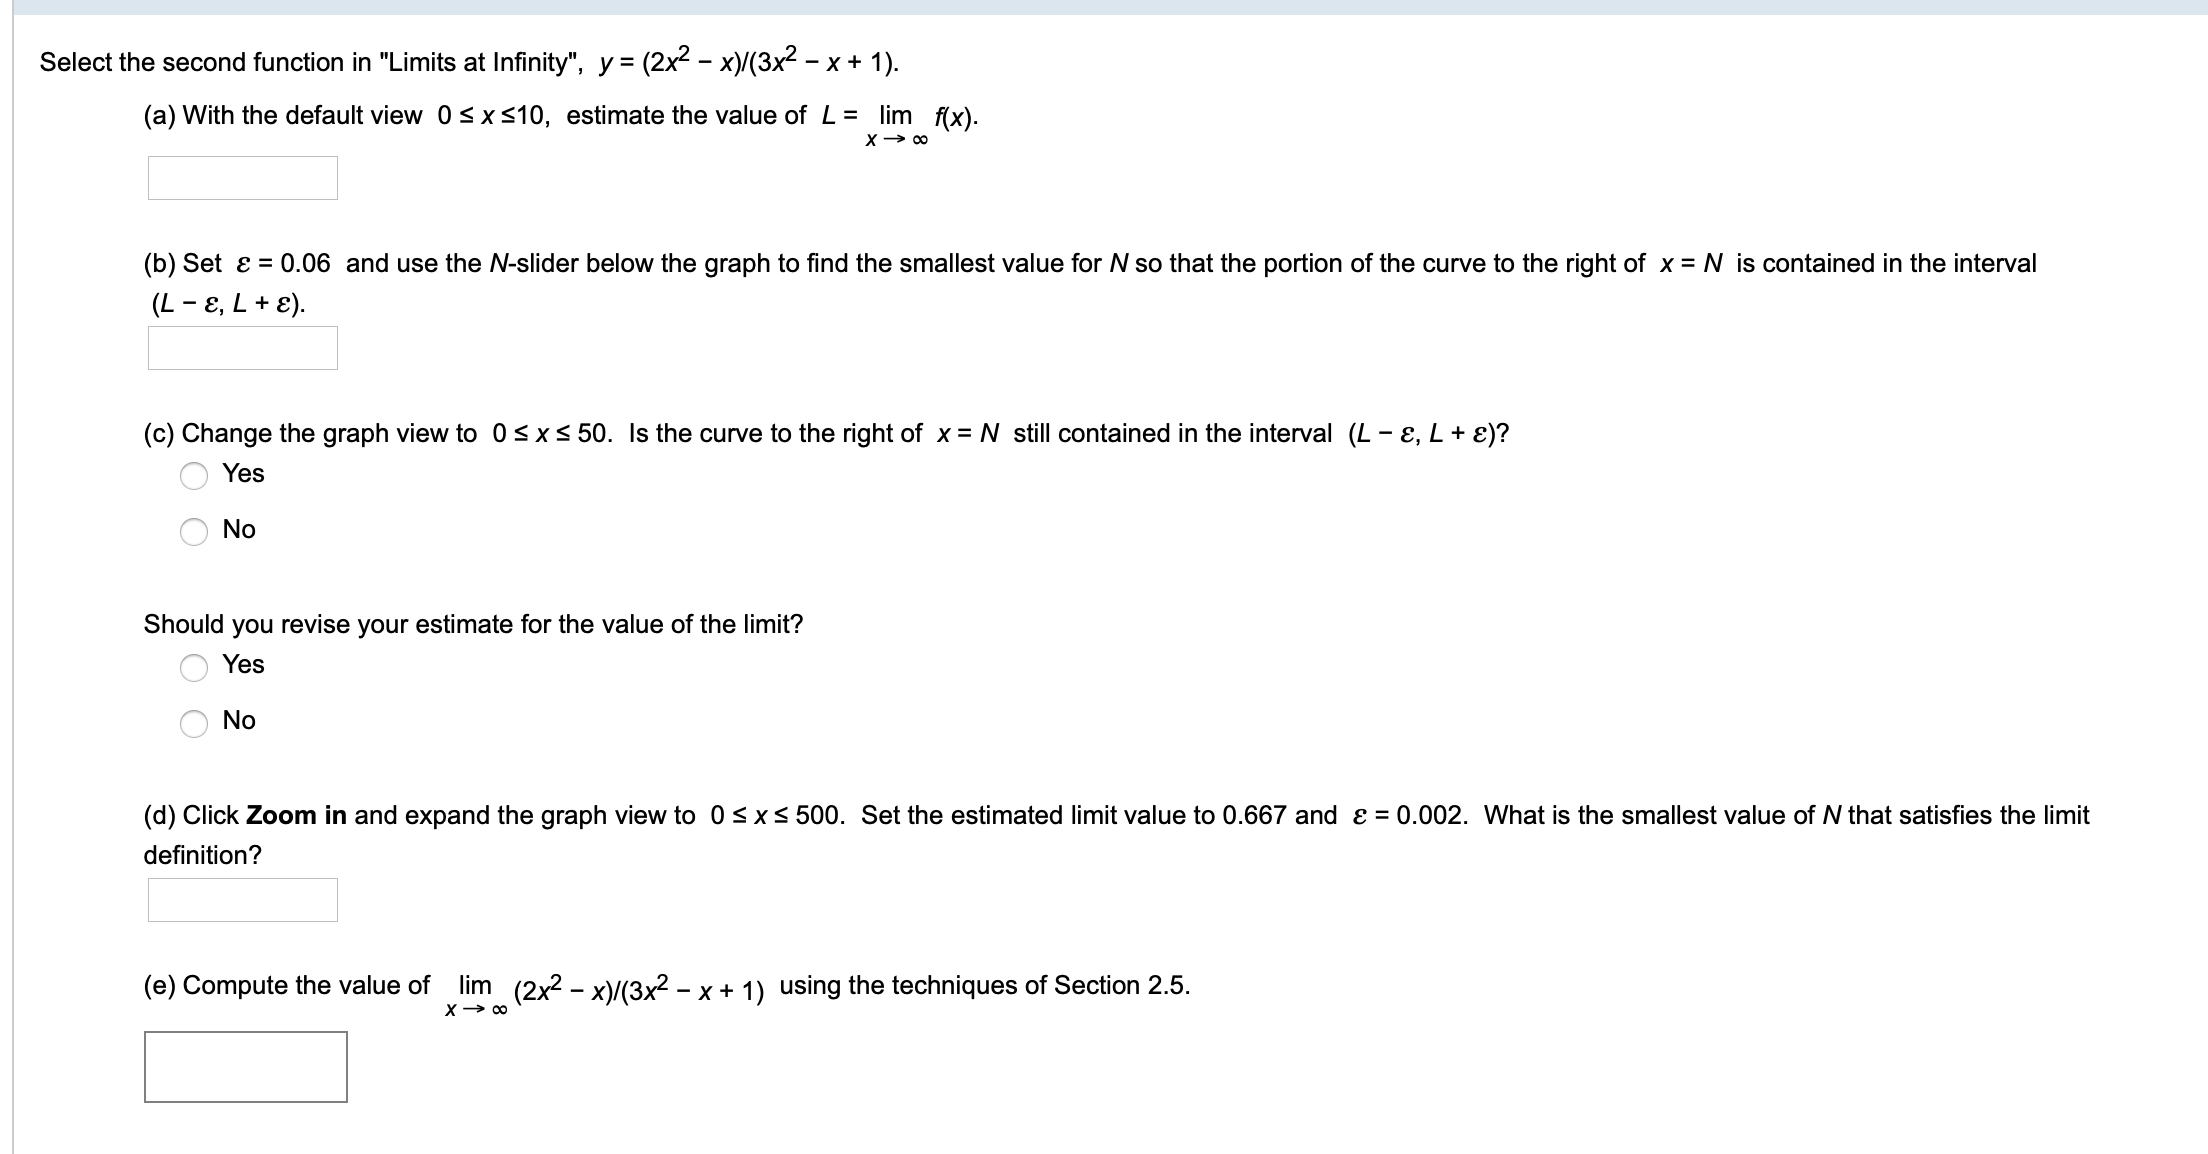 """Select the second function in """"Limits at Infinity"""", y (2x2 -x(3x2 -x+ 1) lim f(x) (a) With the default view 0 s xs10, estimate the value of L X co (b) Set e 0.06 and use the N-slider below the graph to find the smallest value for N so that the portion of the curve to the right of x = N is contained in the interval (L E, L+e) (c) Change the graph view to 0sxs 50. Is the curve to the right of x = N still contained in the interval (L - e, L + e)? Yes No Should you revise your estimate for the value of the limit? Yes No (d) Click Zoom in and expand the graph view to 0sx 500. Set the estimated limit value to 0.667 and e = 0.002. What is the smallest value of N that satisfies the limit definition? lim (2x2 - x/(3x2 - x + 1) using the techniques of Section 2.5 X co (e) Compute the value of"""